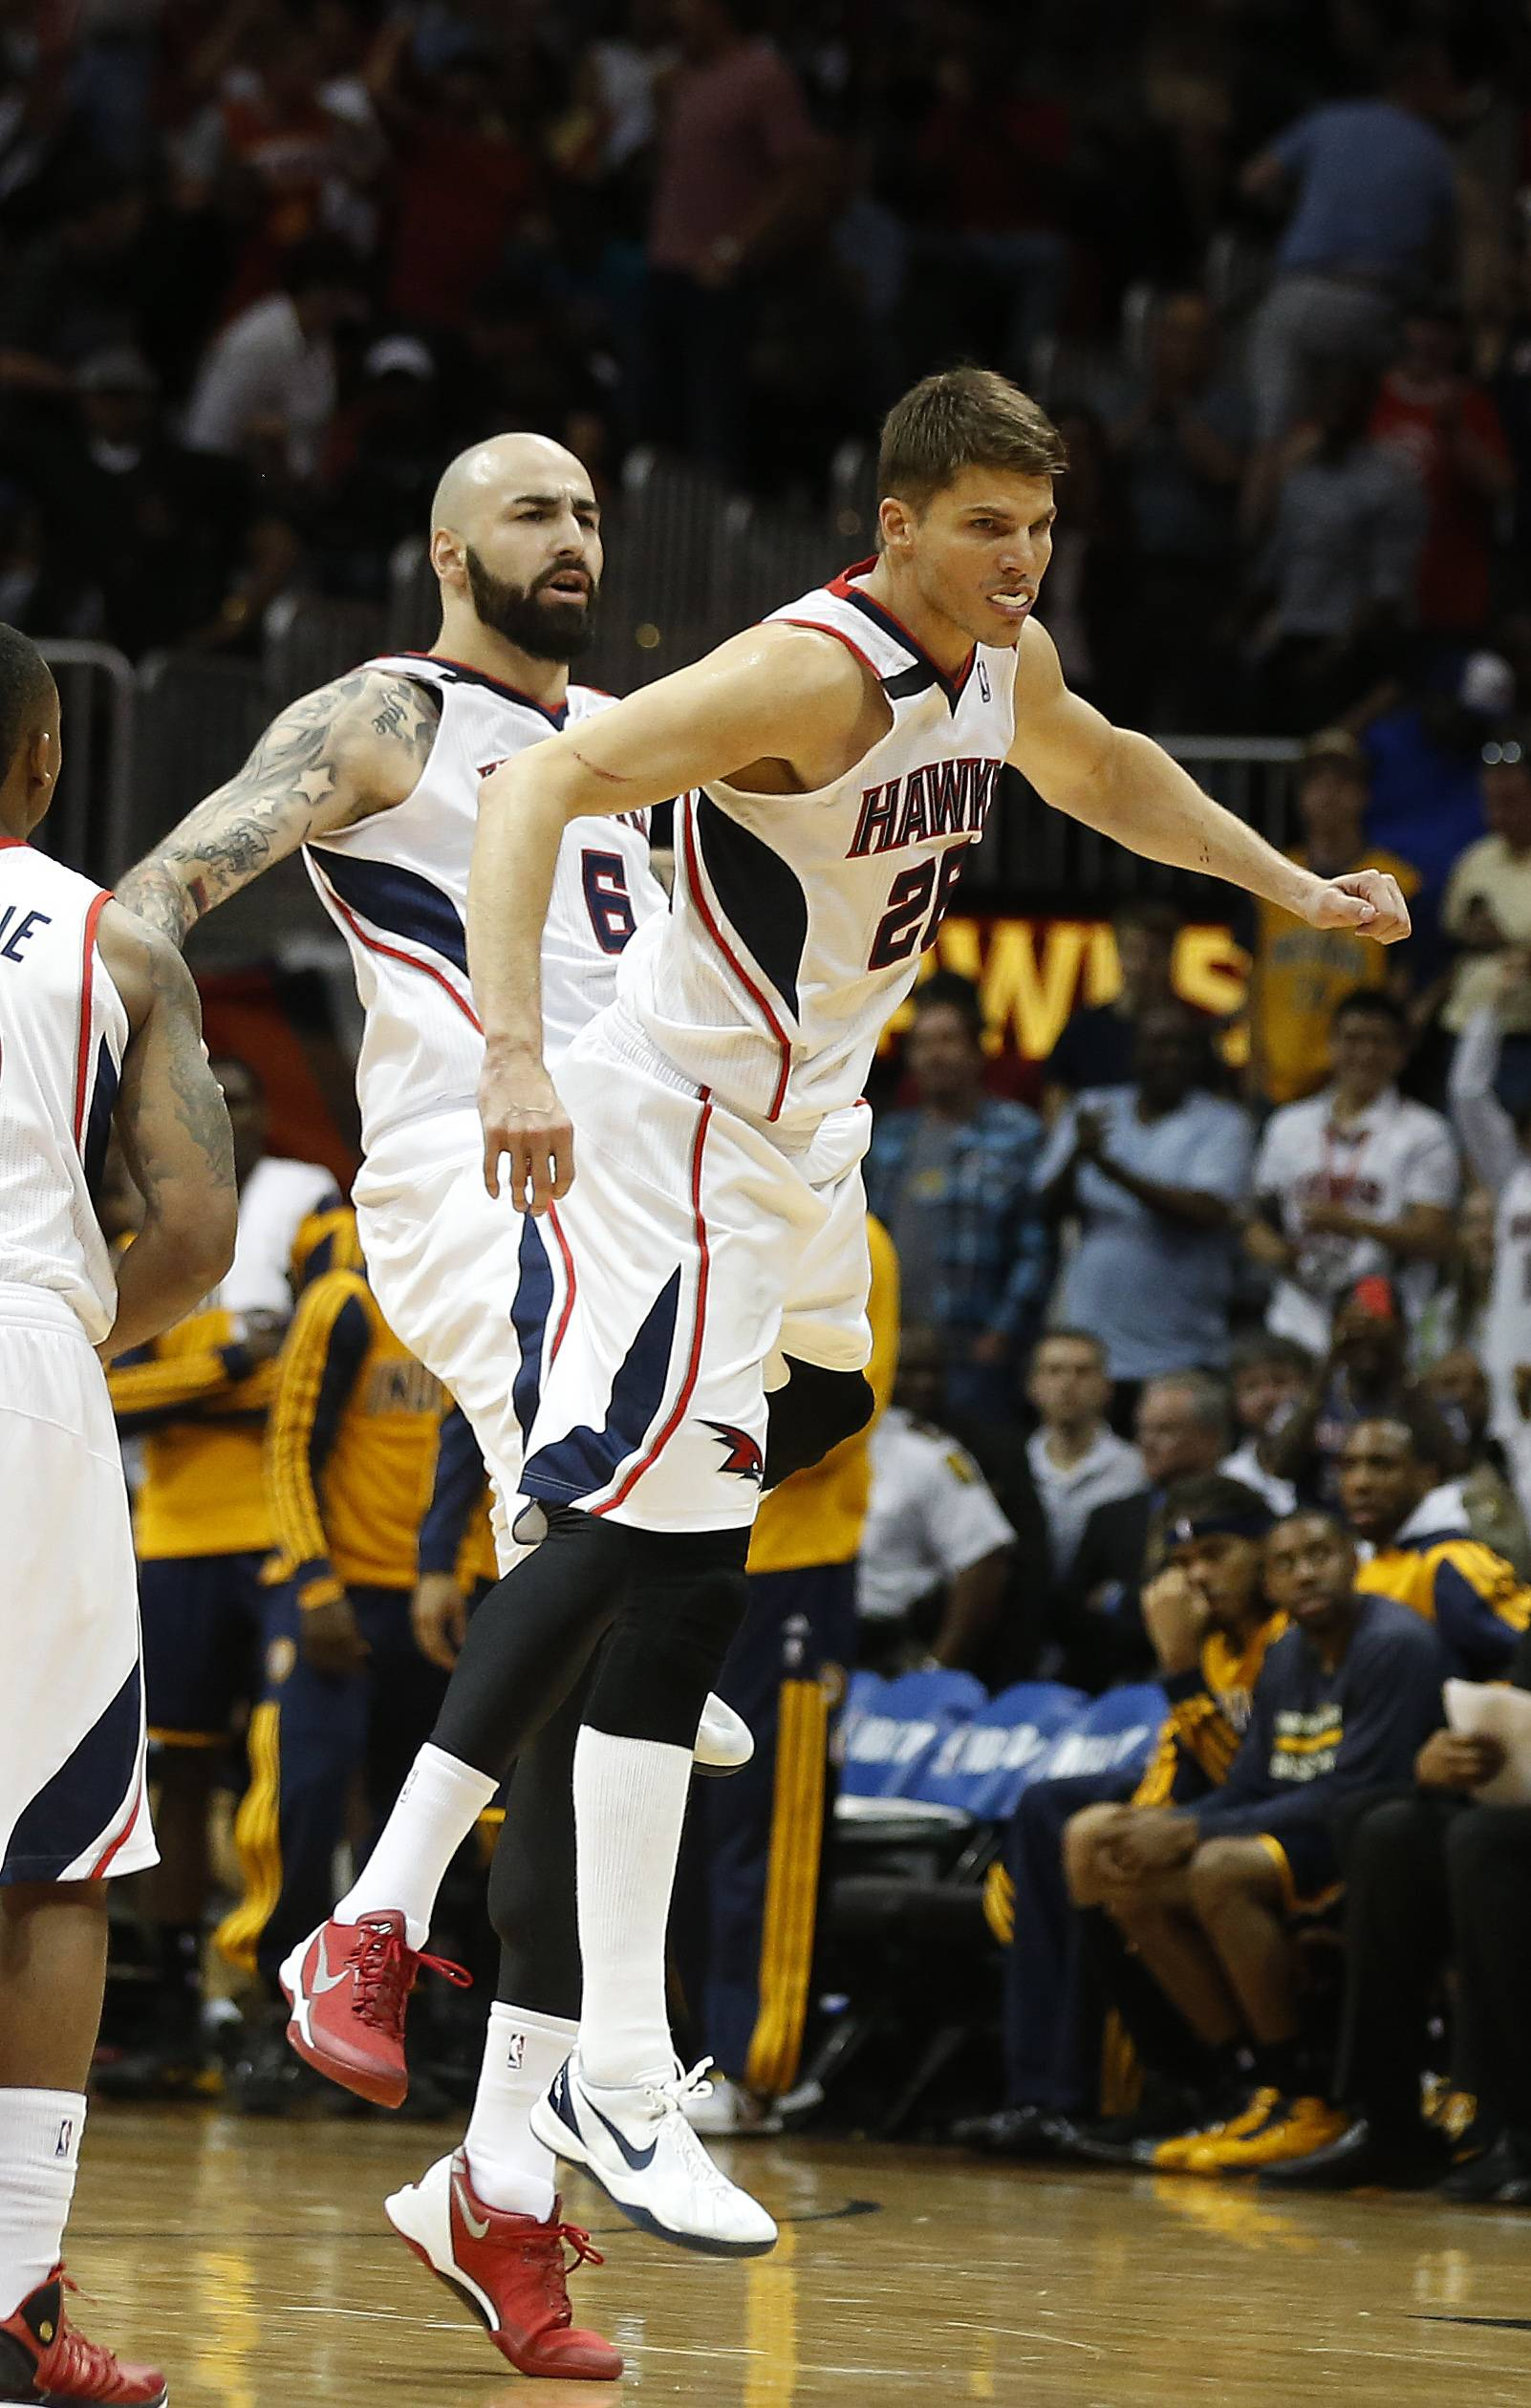 Atlanta Hawks guard Kyle Korver (26) celebrates with center Pero Antic, left, celebrate after hitting a three-point basket in the second half of Game 3 of an NBA basketball first-round playoff series against the Indiana Pacers, Thursday, April 24, 2014, in Atlanta. The Hawks won 98-85. (AP Photo/John Bazemore)